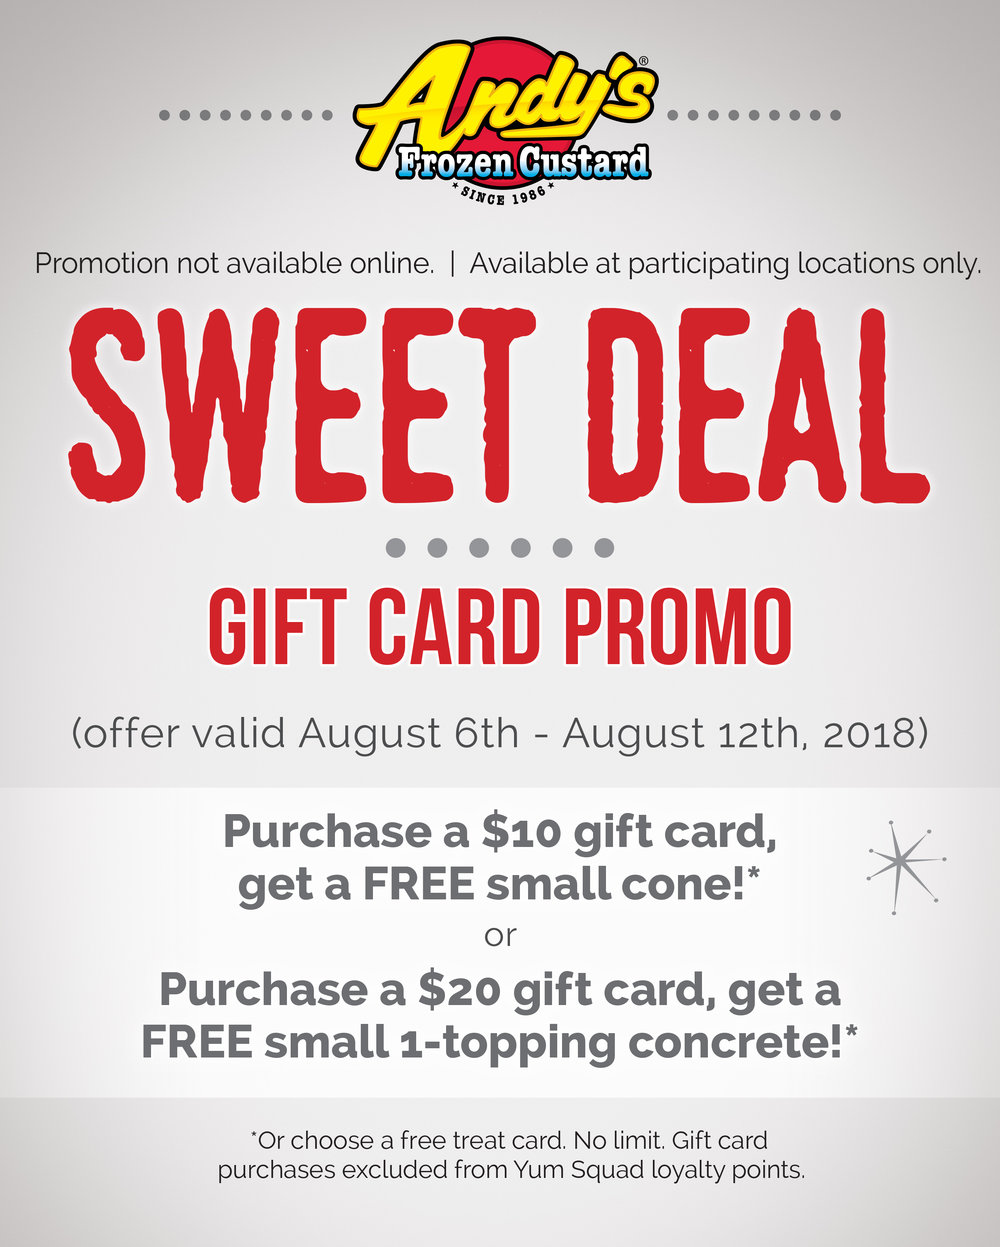 National Frozen Custard Gift Card Offer 2018.jpg